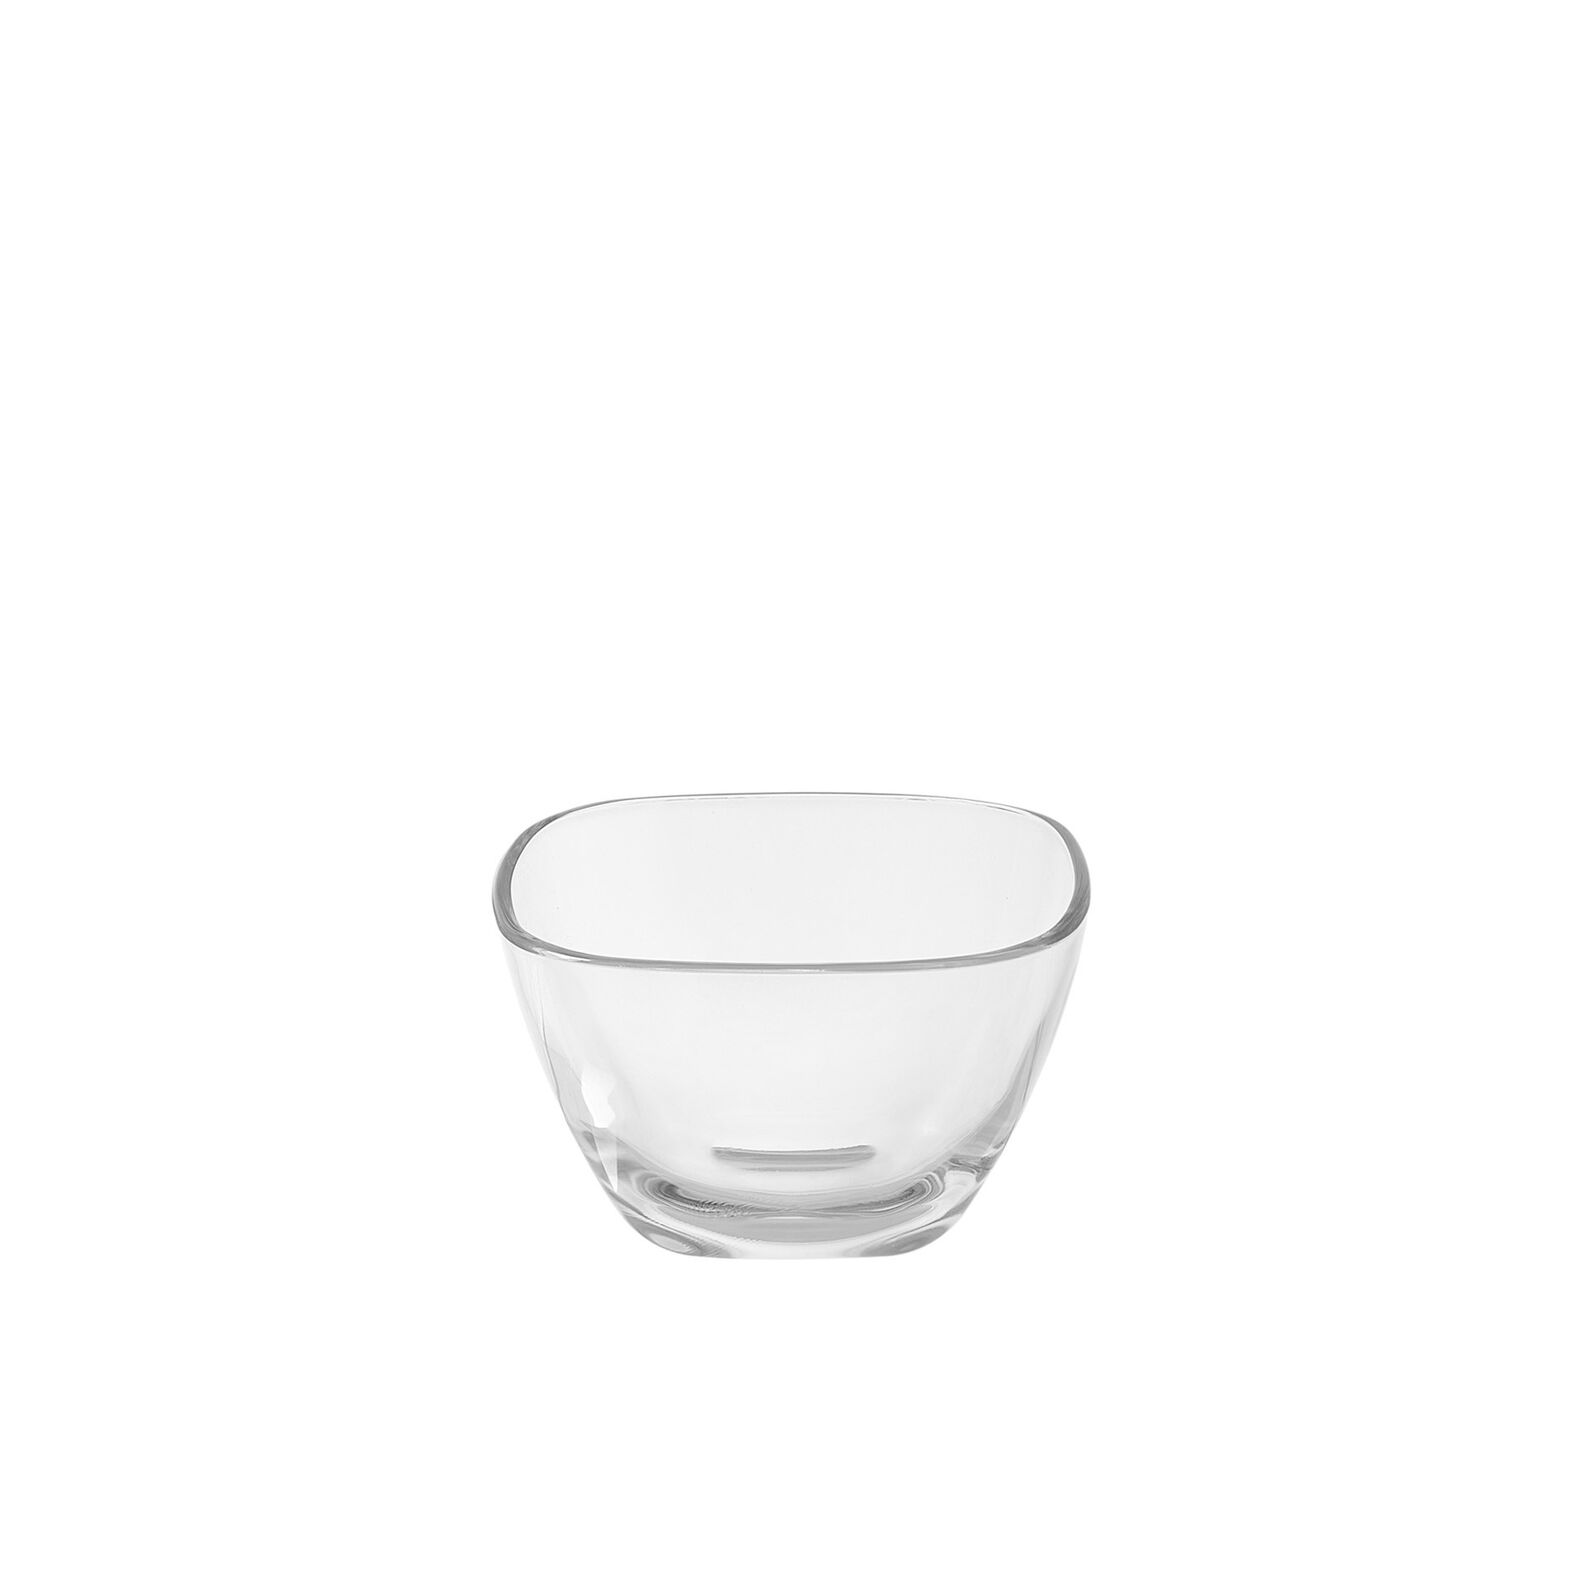 Fenice small smooth glass bowl